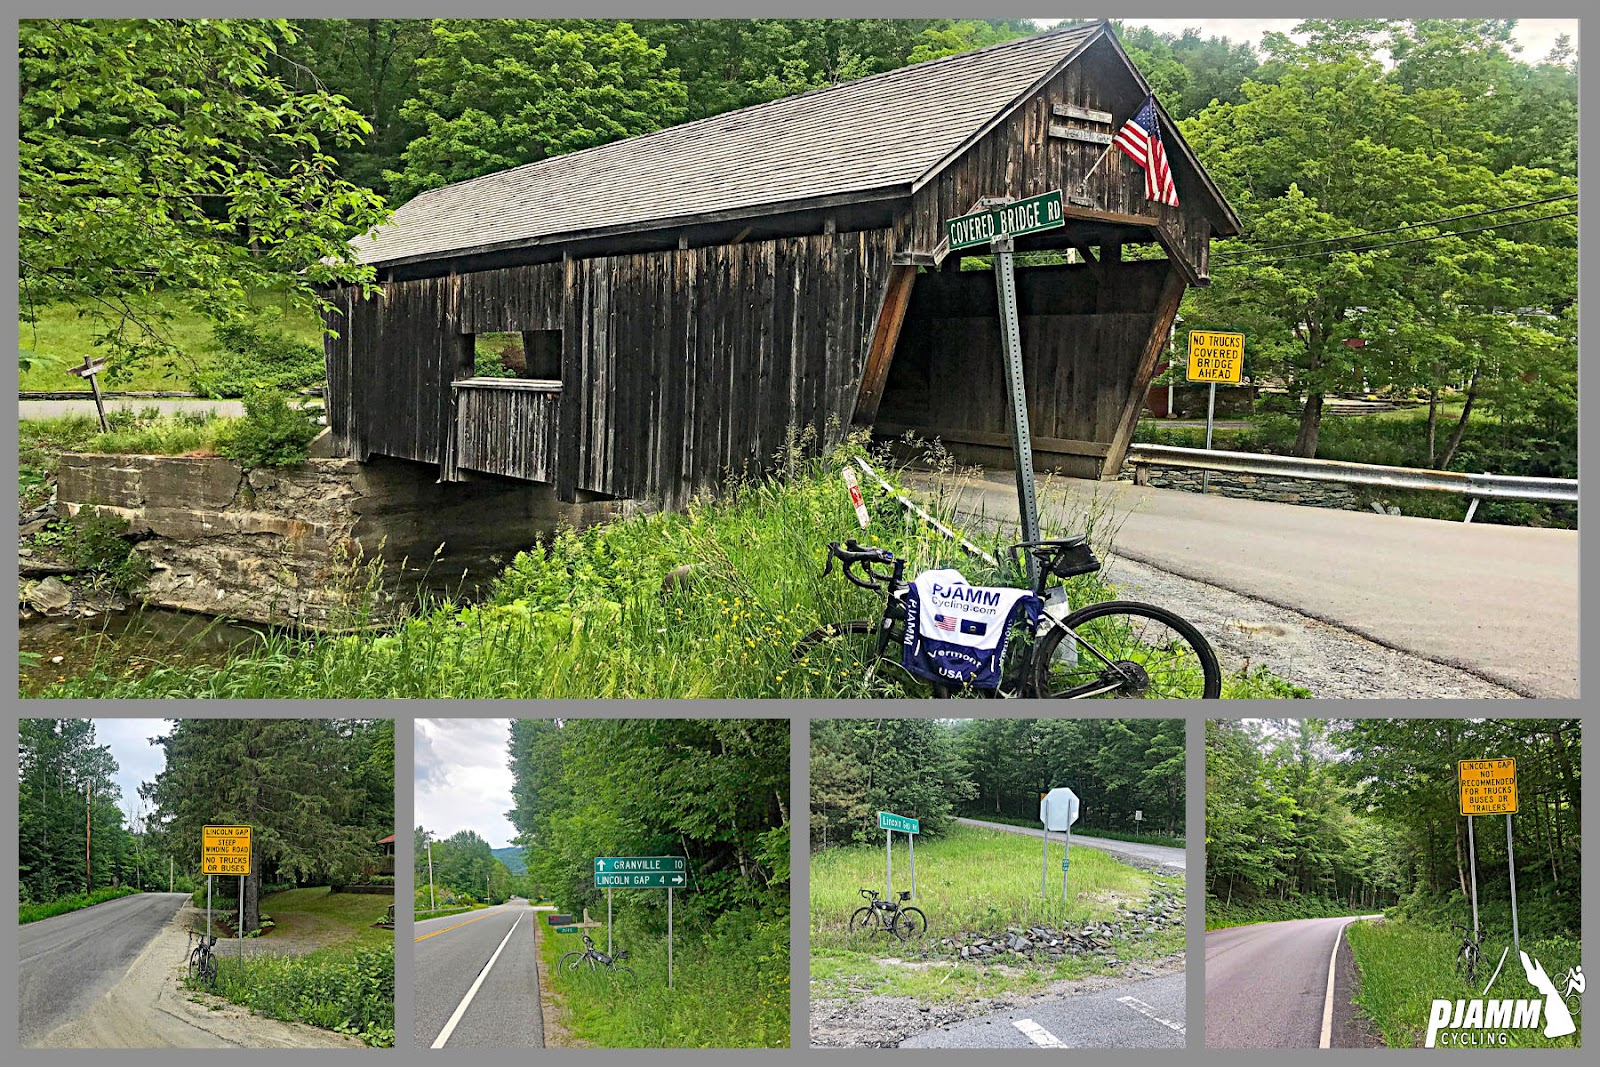 Cycling Lincoln Gap East - photo collage, old wooden covered bridge crossing small river, Covered Bridge Road sign in foreground with bike leaning against it, draped with PJAMM cycling jersey, multiple road signs along road surrounded with dense forestation